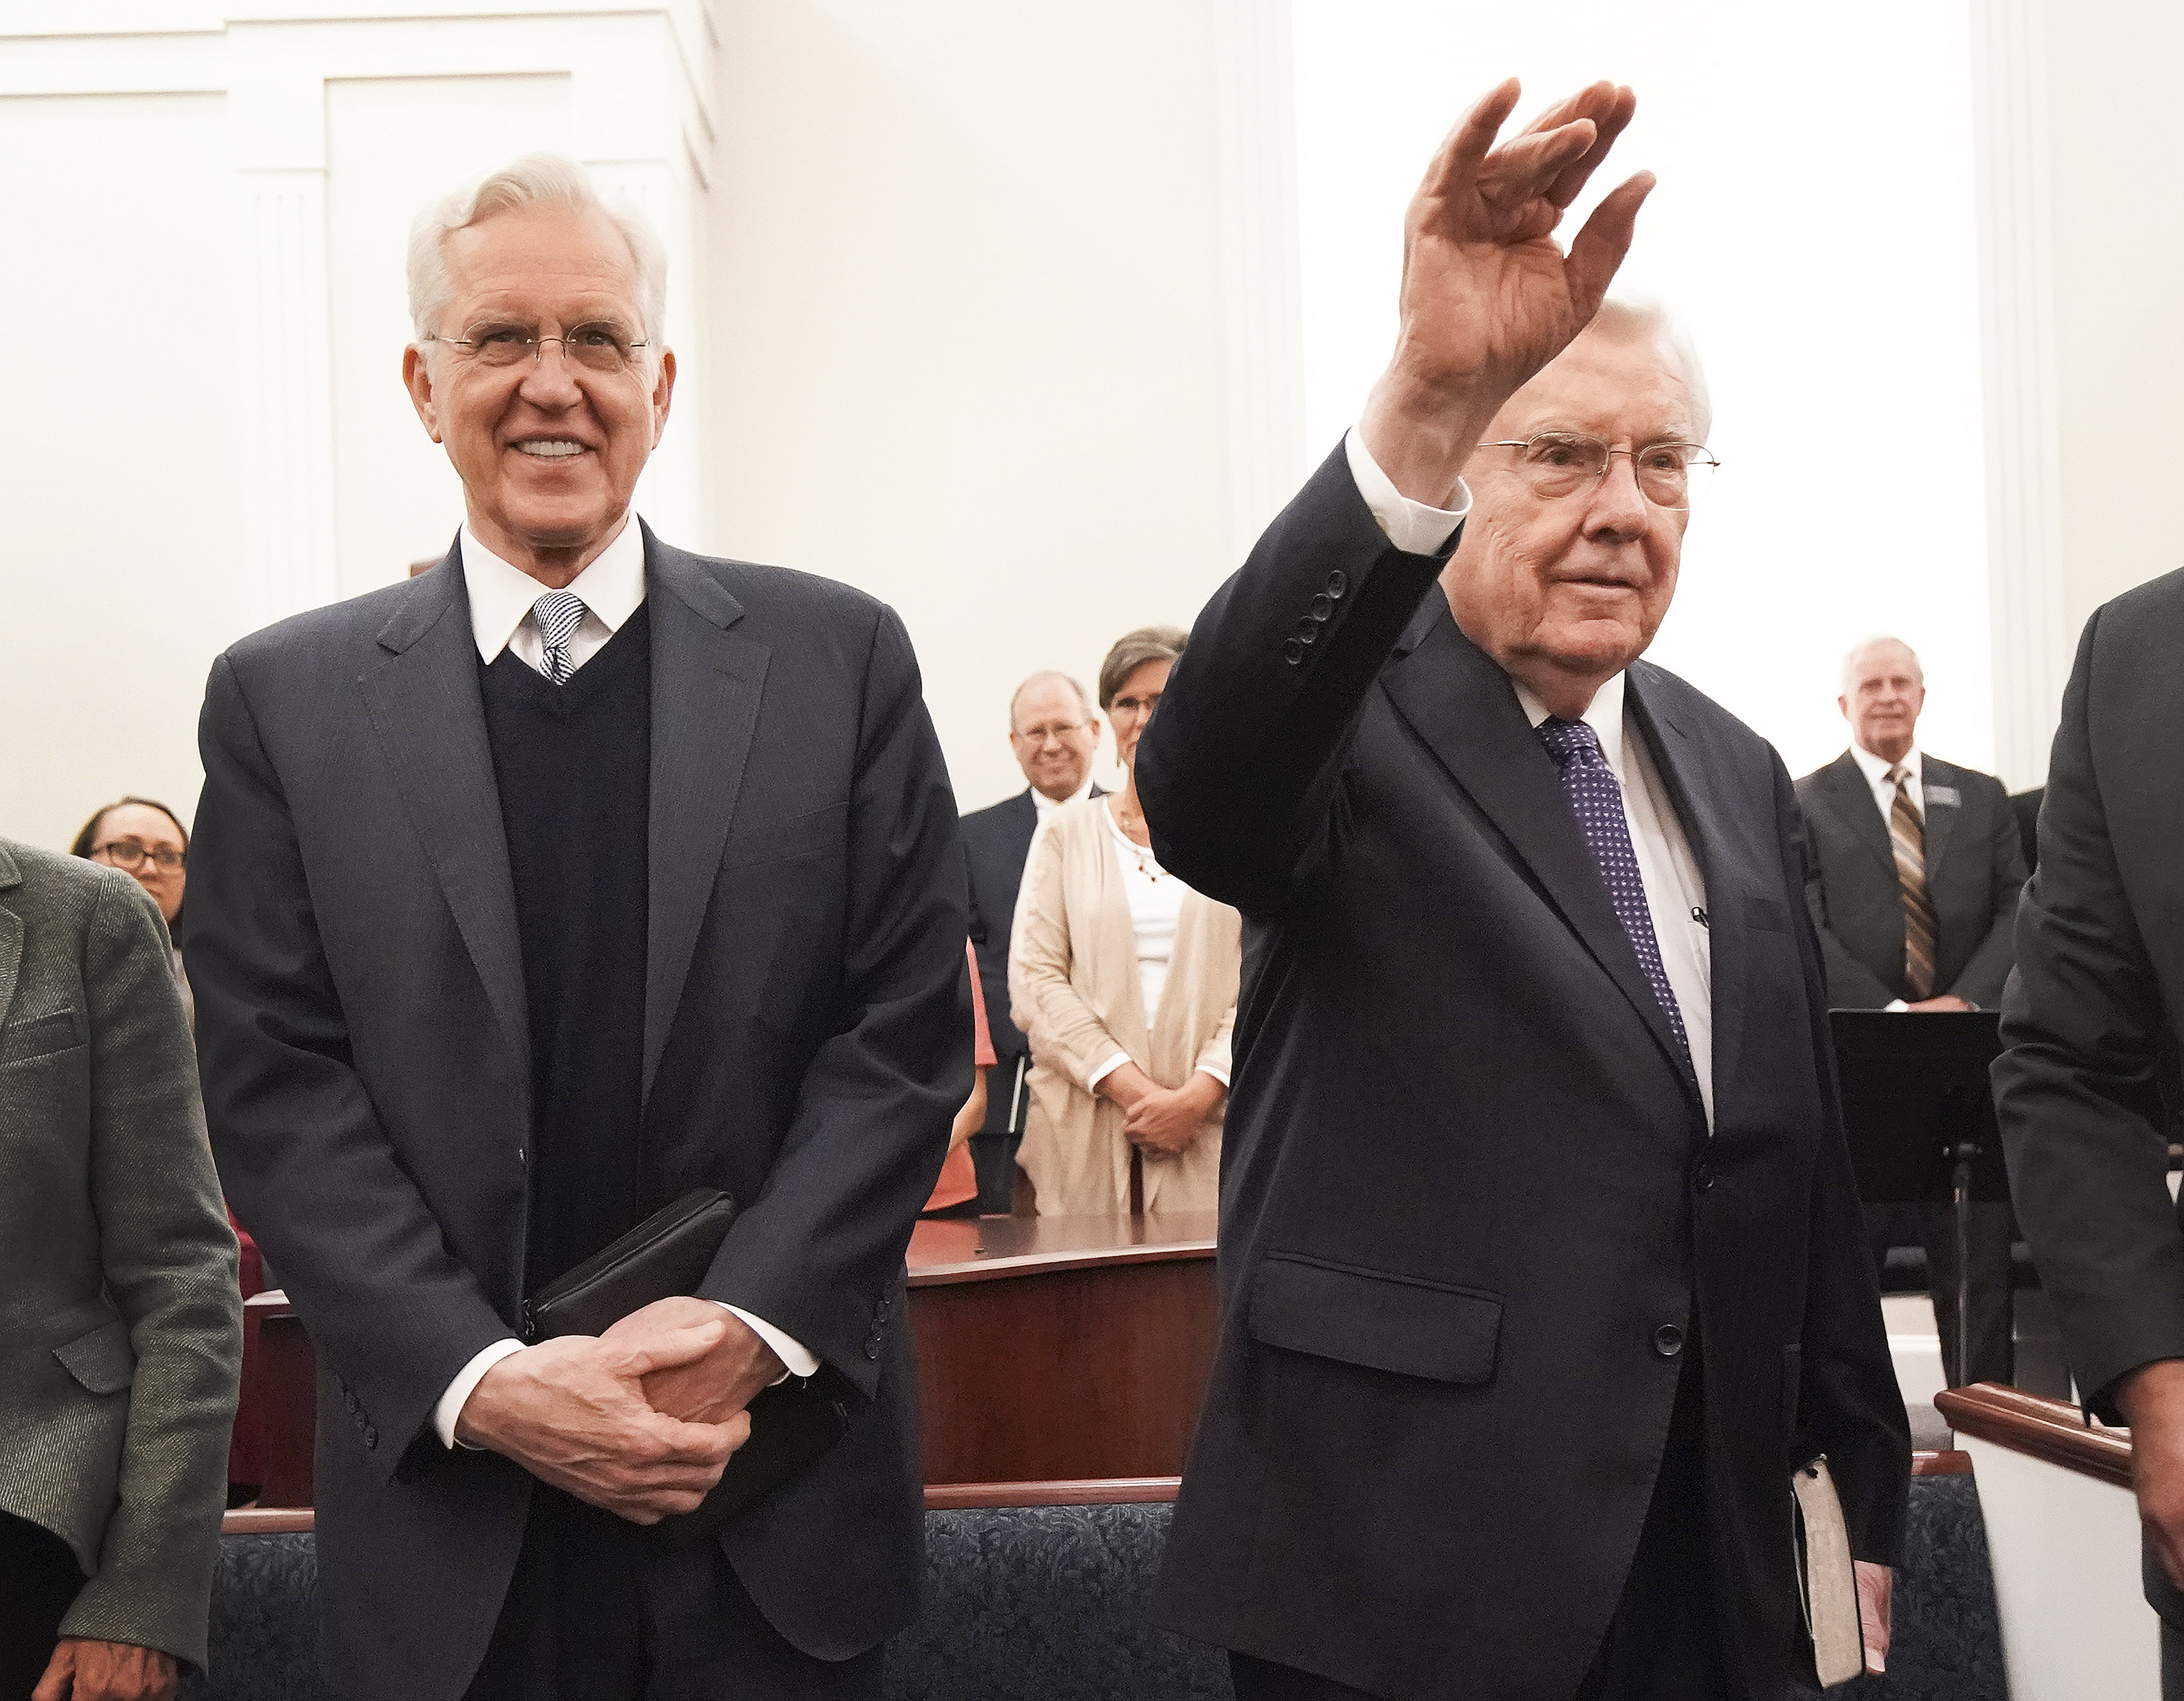 President M. Russell Ballard, acting president of the Quorum of the Twelve Apostles of The Church of Jesus Christ of Latter-day Saints, and Elder D. Todd Christofferson, of The Church of Jesus Christ of Latter-day Saints' Quorum of the Twelve Apostles, waves prior to speaking during a member meeting in South Royalton, Vt. on Friday, Oct. 18, 2019.